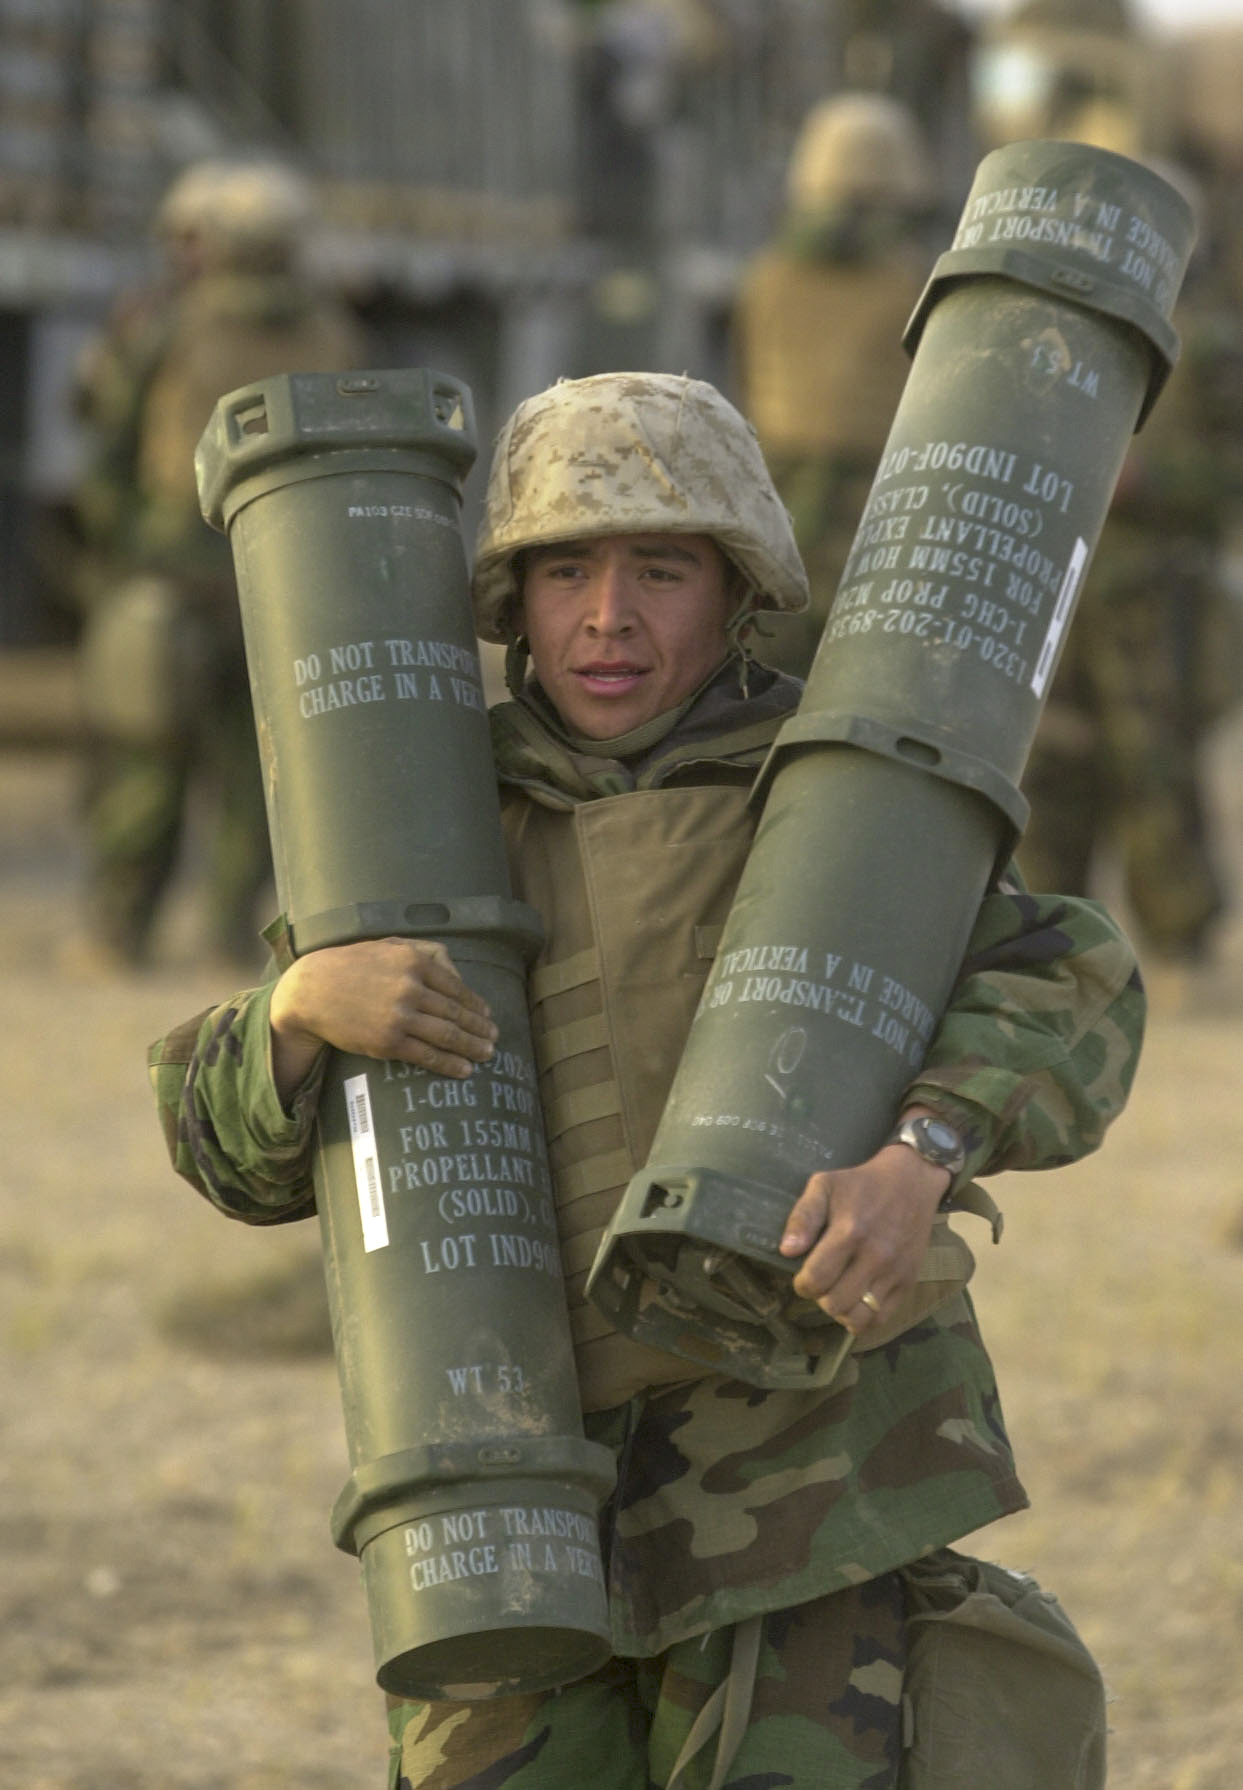 Lance Cpl. Steven Lopez, 19, with Battery M, 3rd Battalion, 11th Marine Regiment from Los Angeles, CA carries two charges for a 155mm howitzer during a ammunition resupply at an artillery position in southern Iraq on March 22, 2003. 03/22/2003 ( Jud McCrehin/Marine Corps Times)